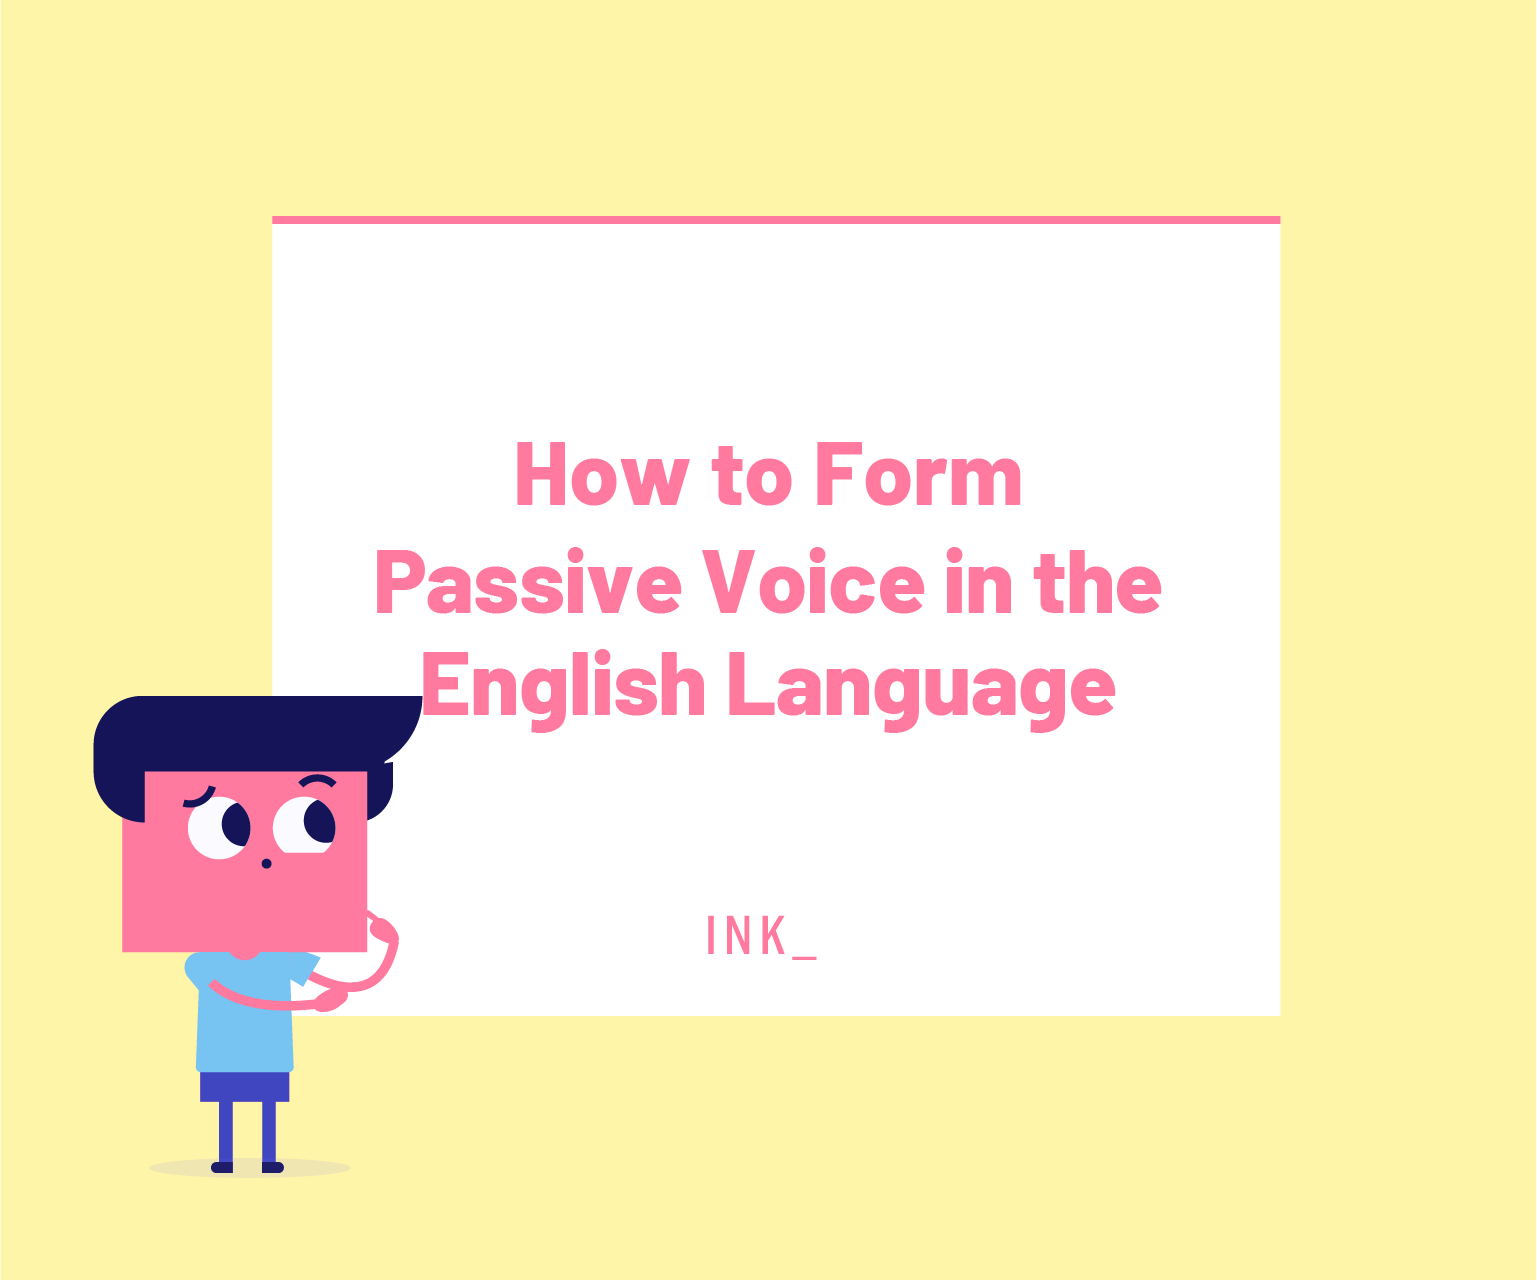 How to form passive voice in the english language